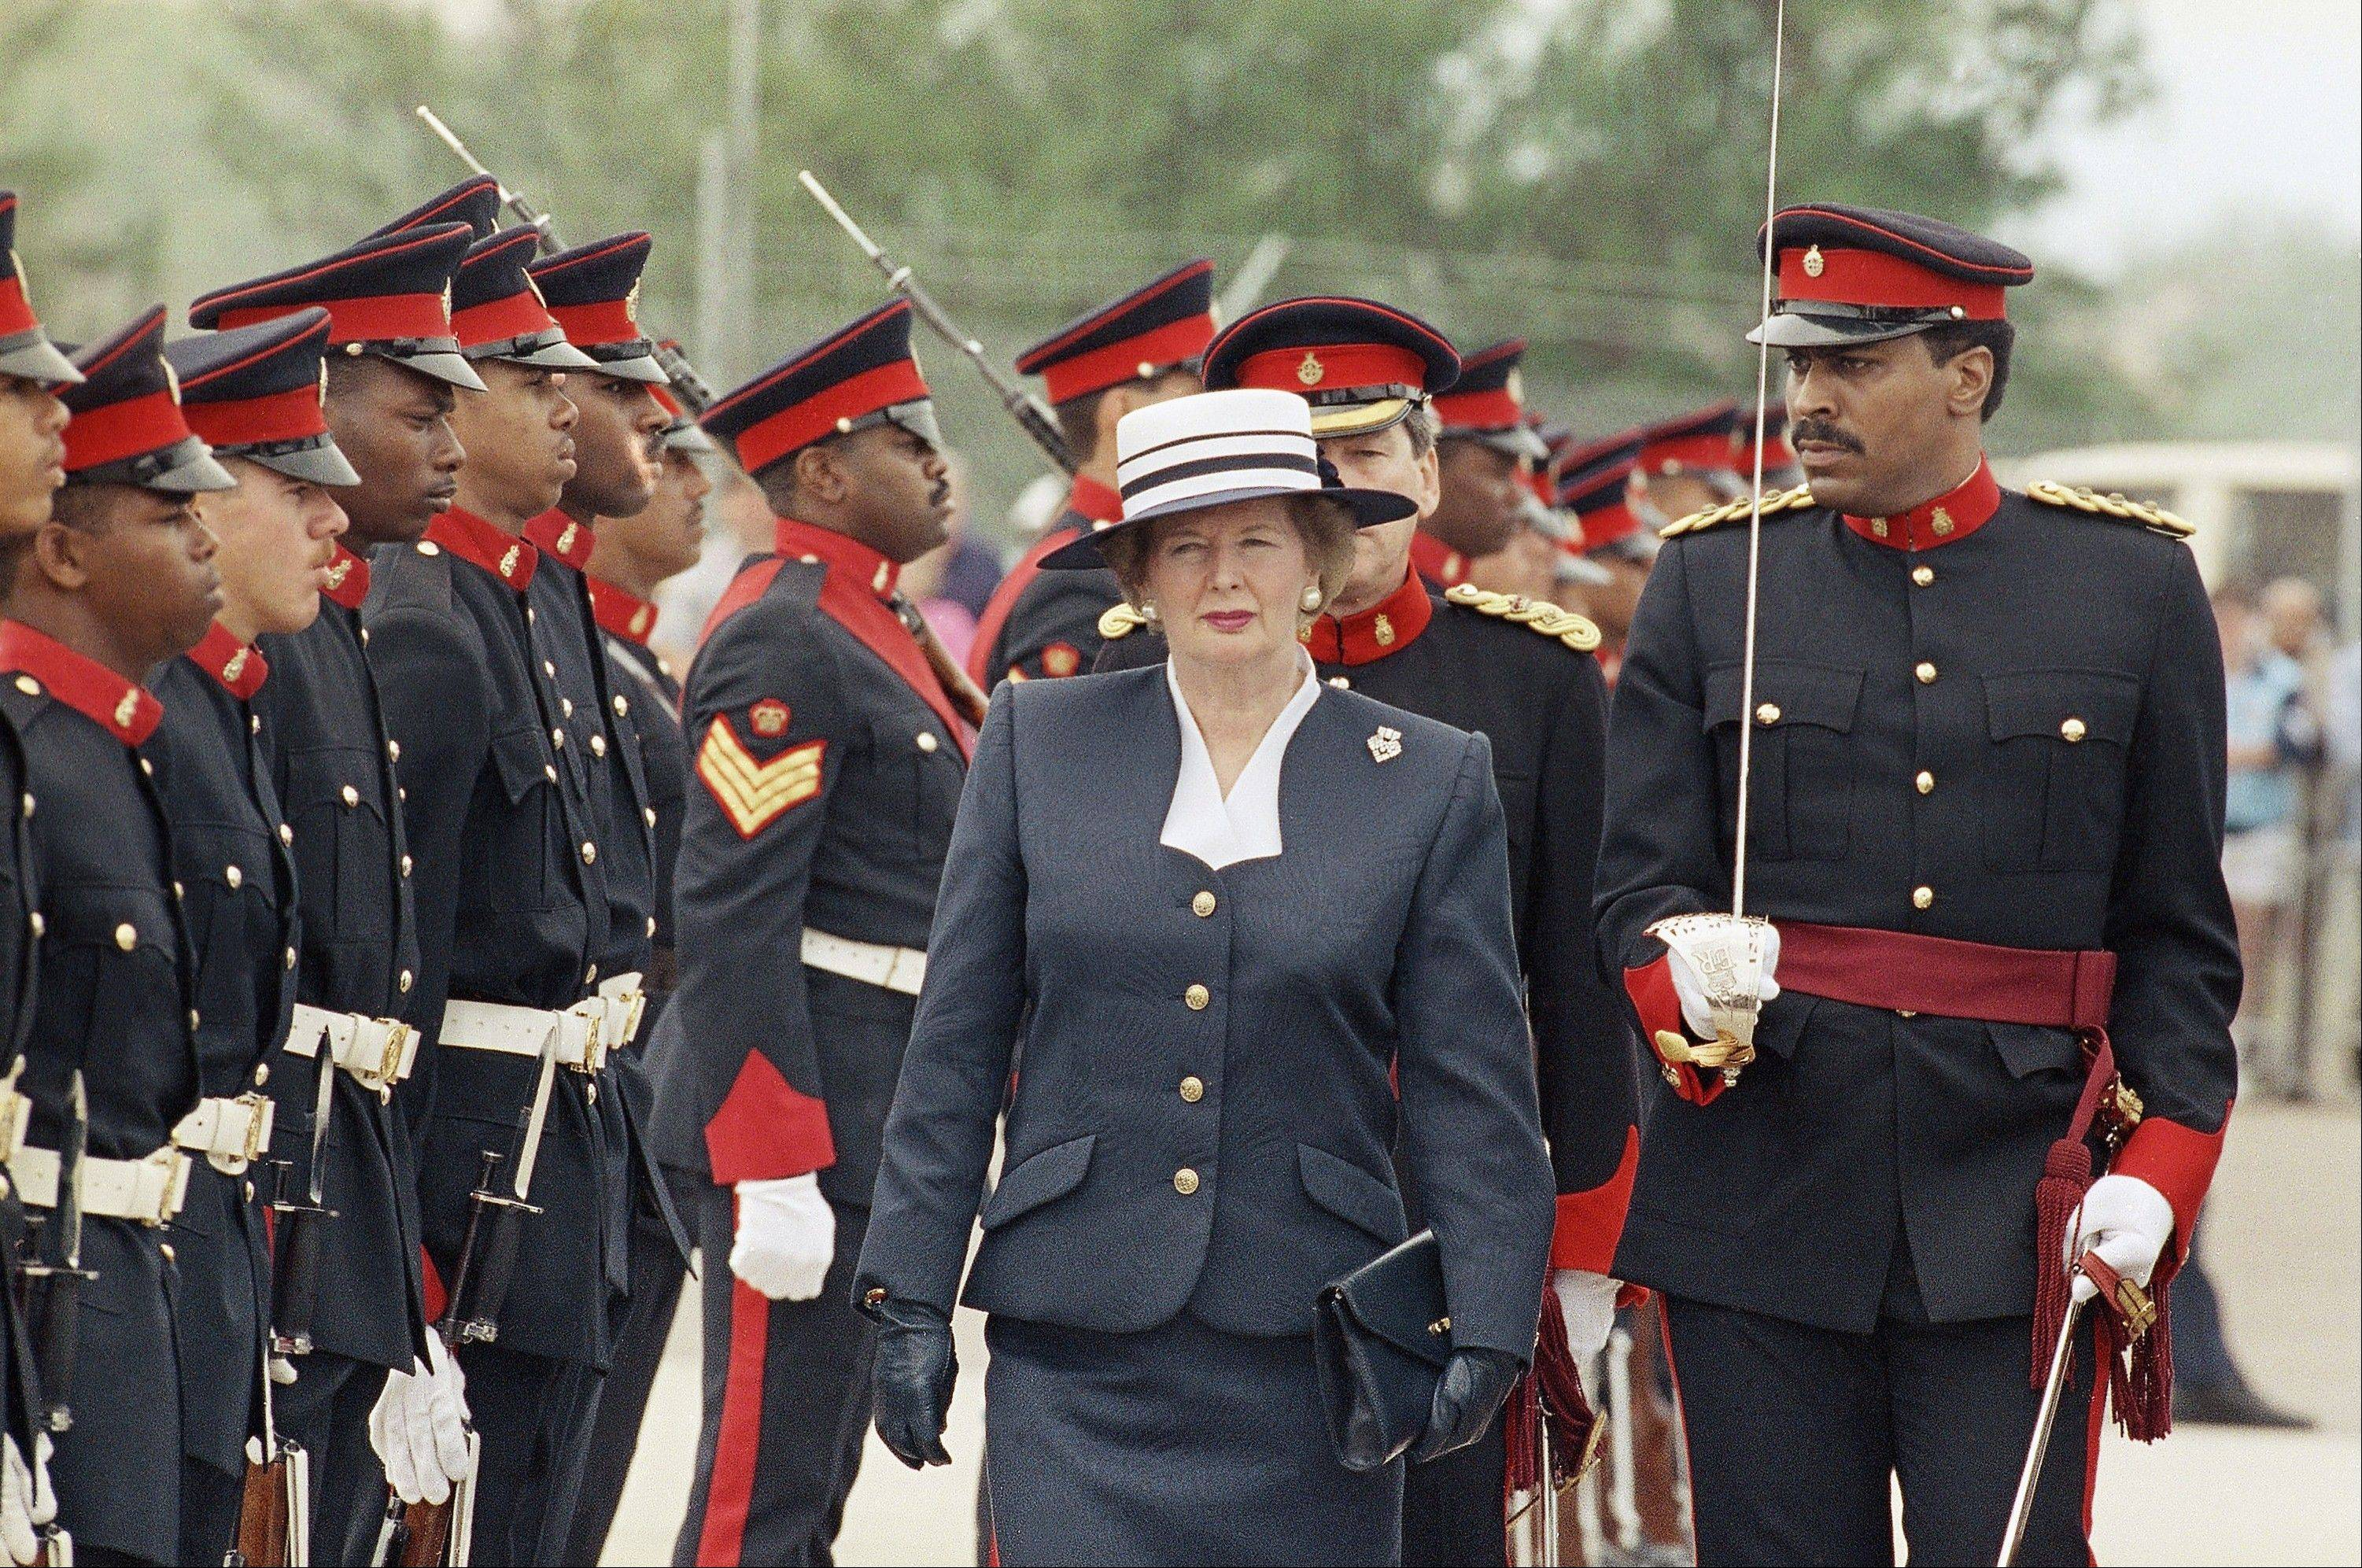 Margaret Thatcher, then British prime minister, reviews the troops at the Bermuda airport in Hamilton after a flight from London. Bermuda is one of 16 territories listed by the U.N. as awaiting decolonization.